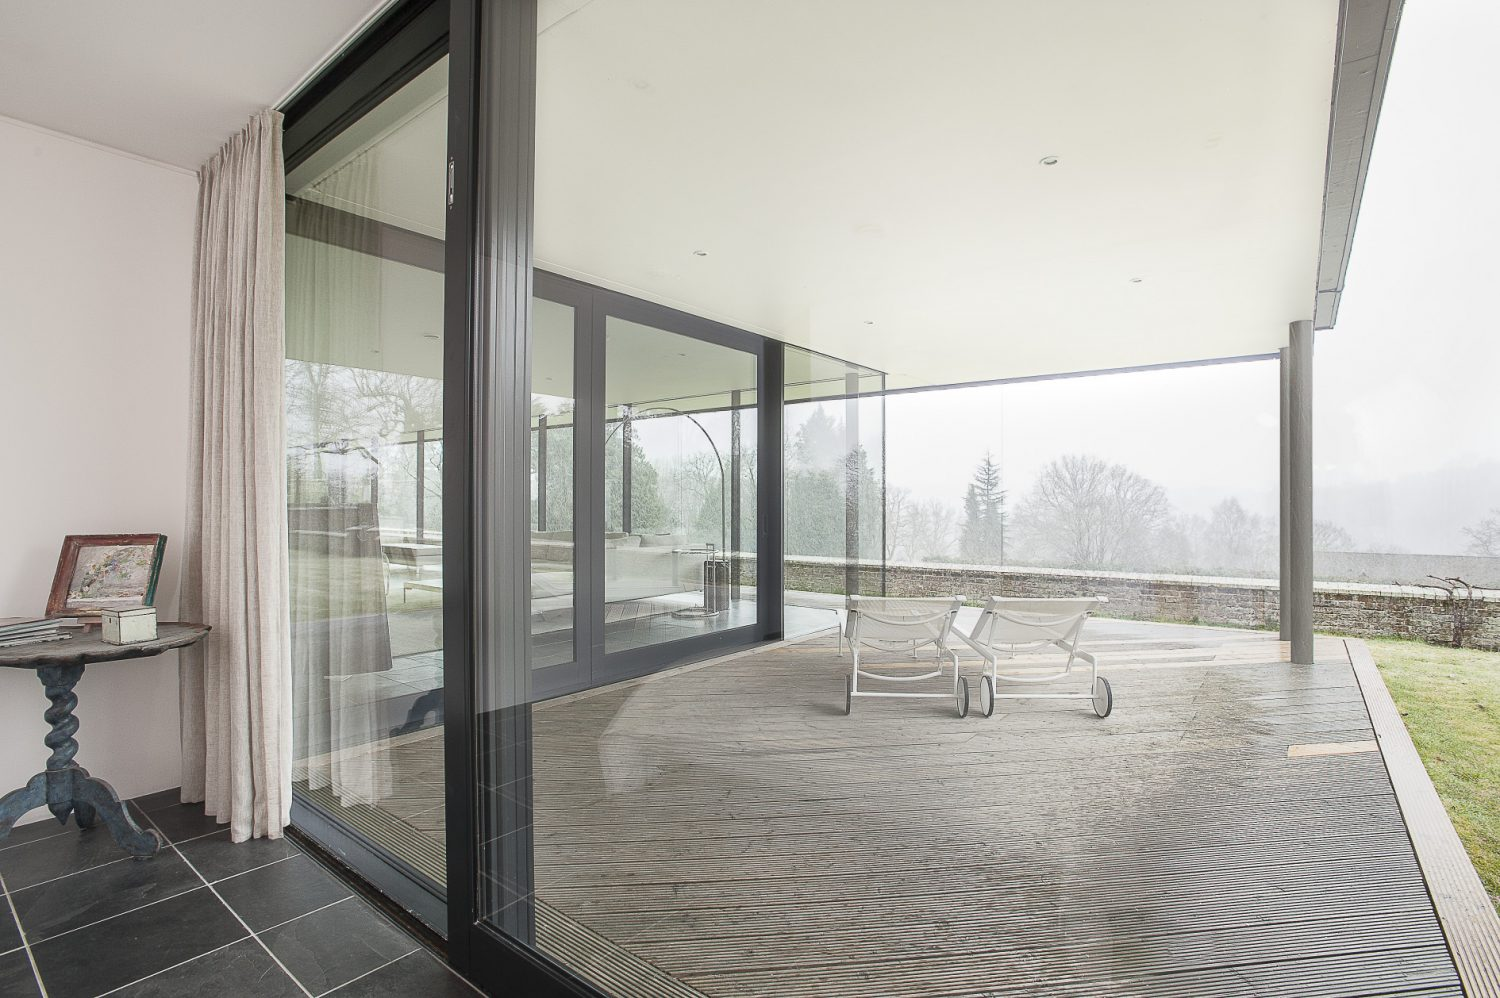 Full height glass doors slide open to allow access onto the terrace in the second bedroom